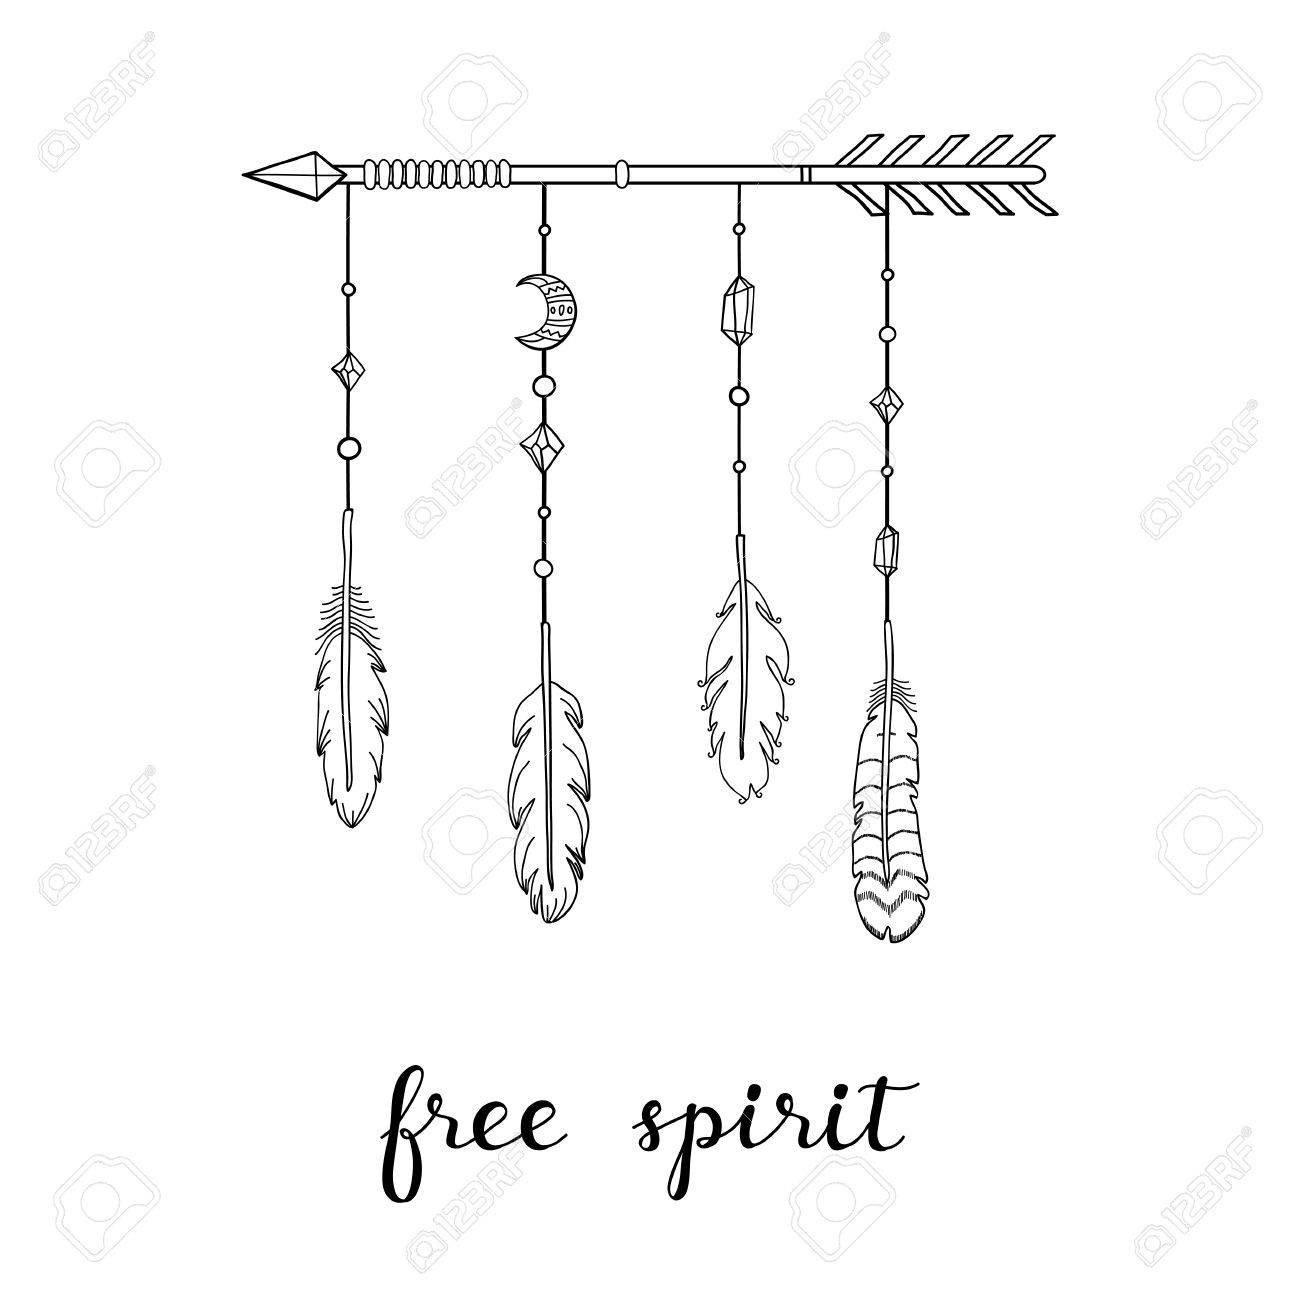 Inspirational Quote Free Spirit Poster With Hand Drawn Boho